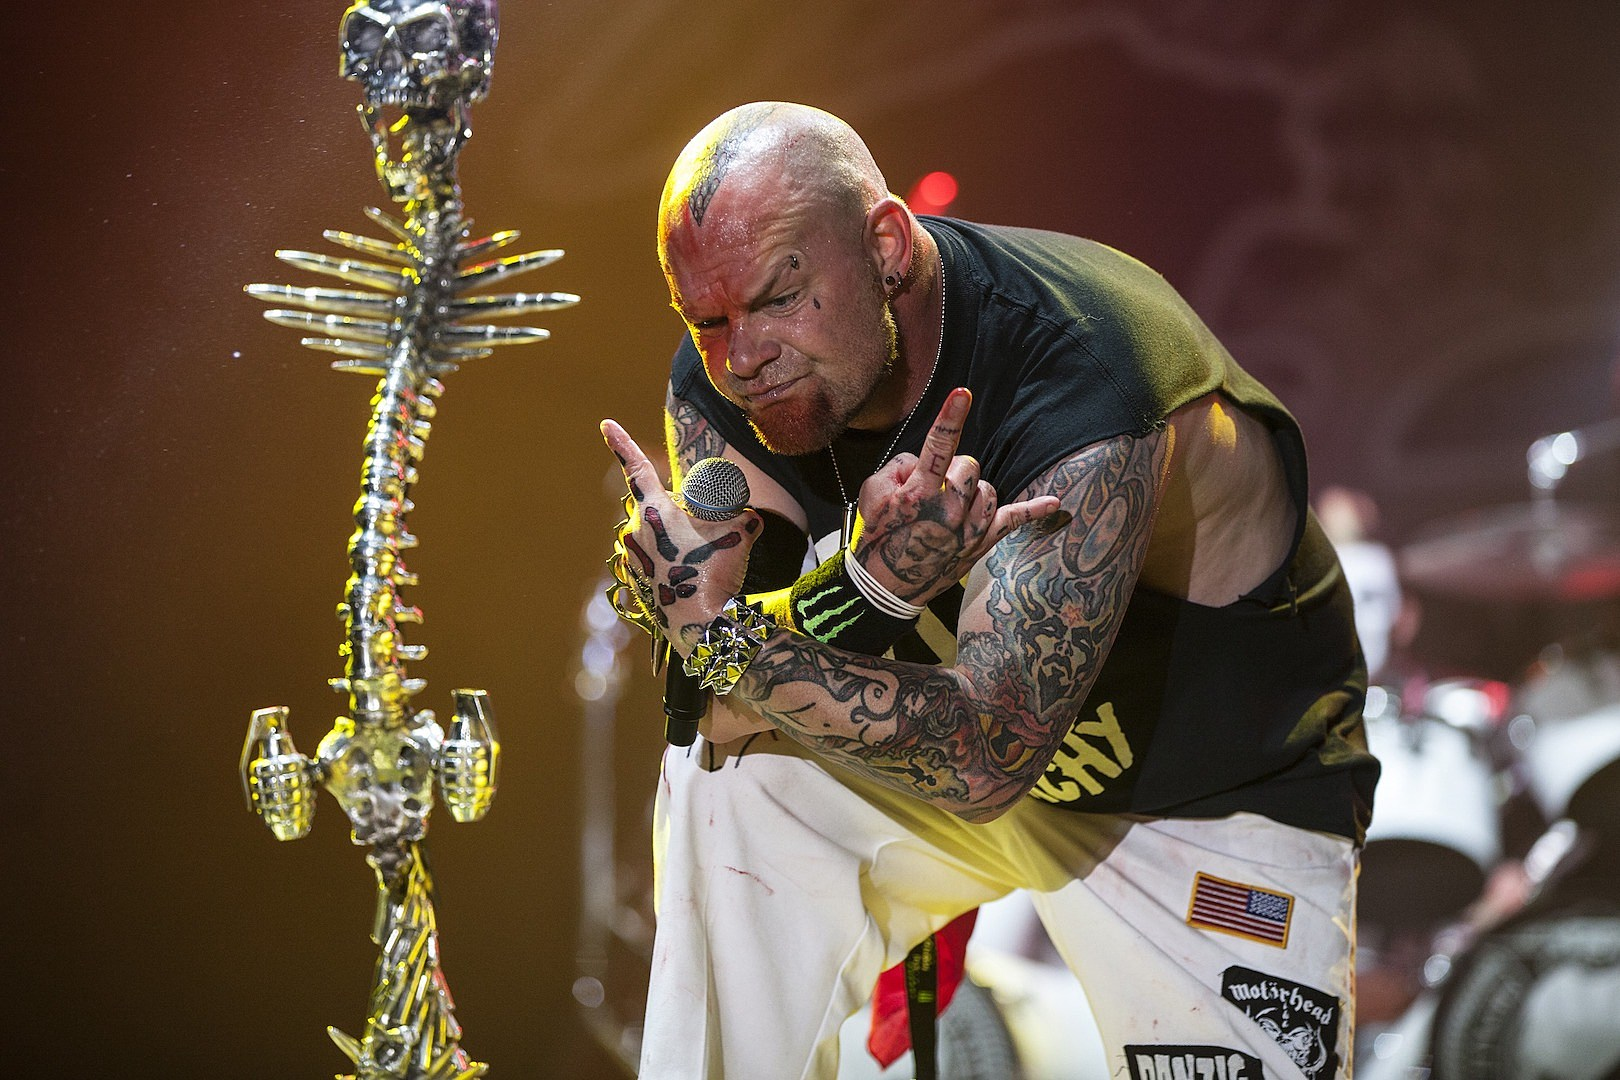 The Offspring New Album 2020 Ivan Moody Hopes For New Five Finger Death Punch Album Early 2020